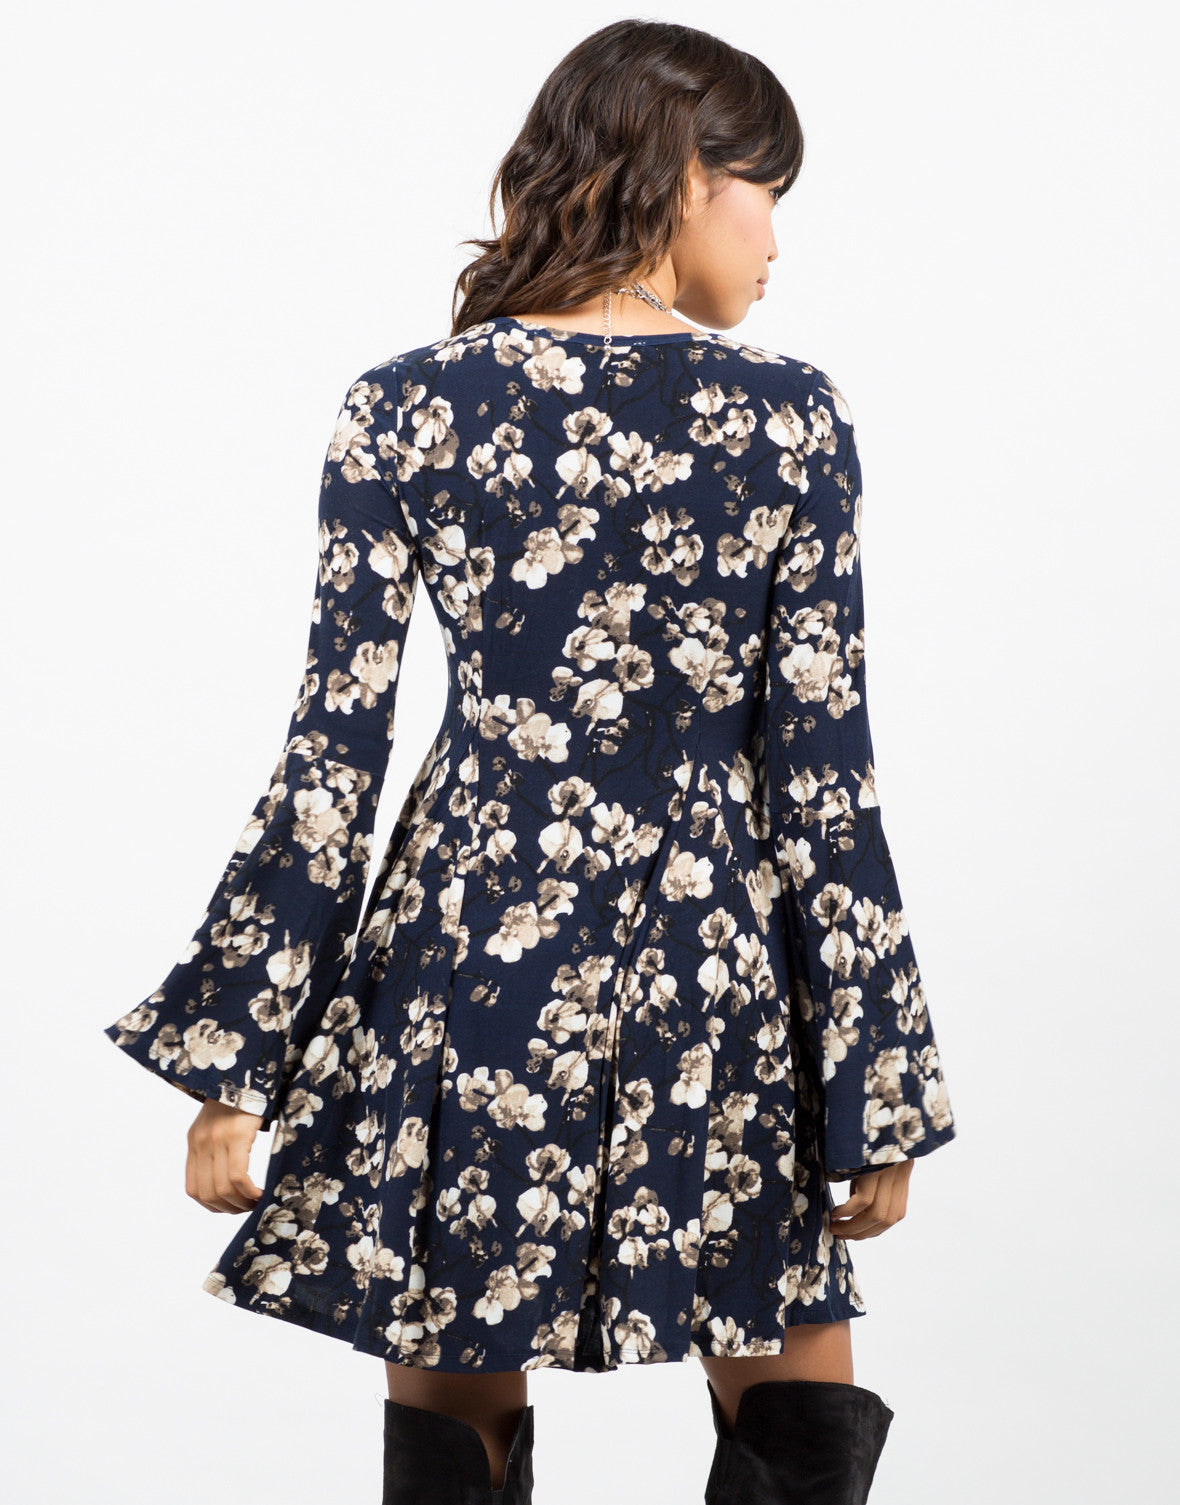 Back View of Floral Printed Flared Dress